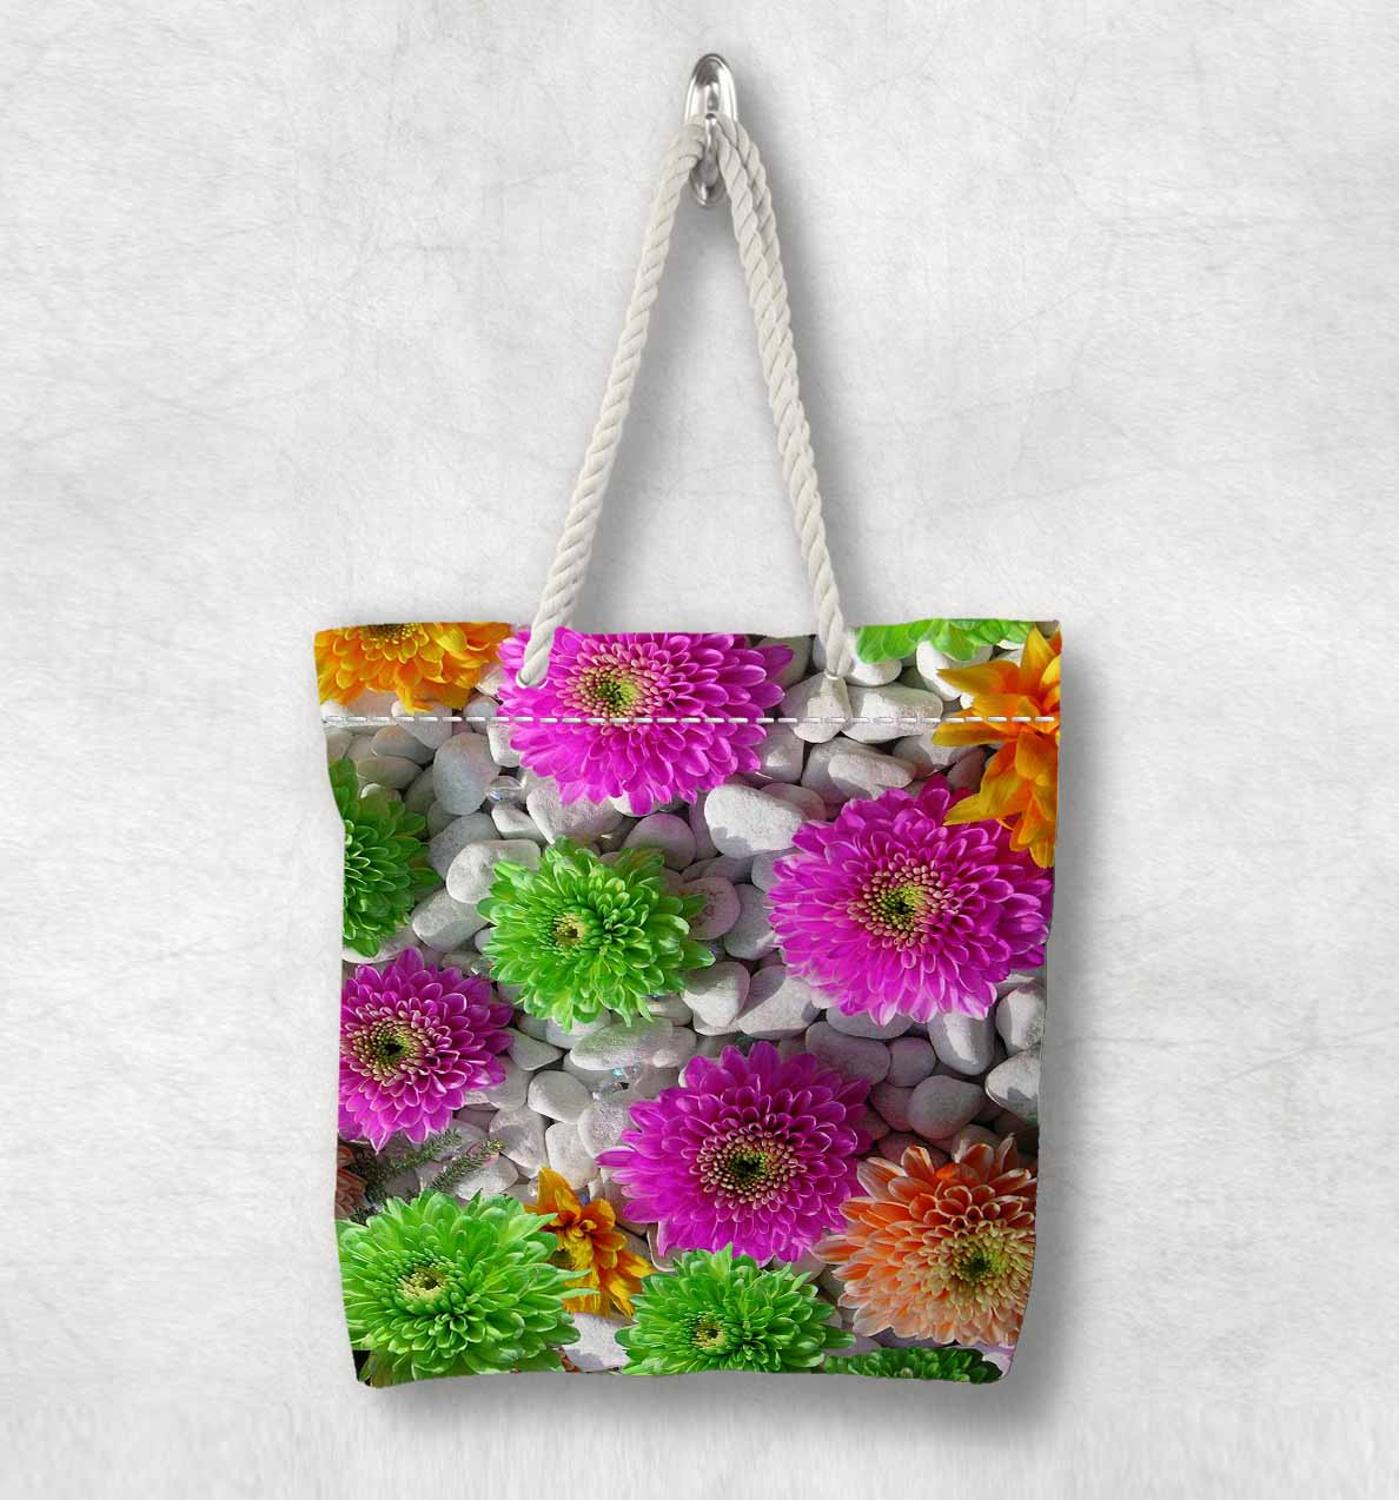 Else Stones On Green Pink Orange Flowers New Fashion White Rope Handle Canvas Bag Cotton Canvas Zippered Tote Bag Shoulder Bag